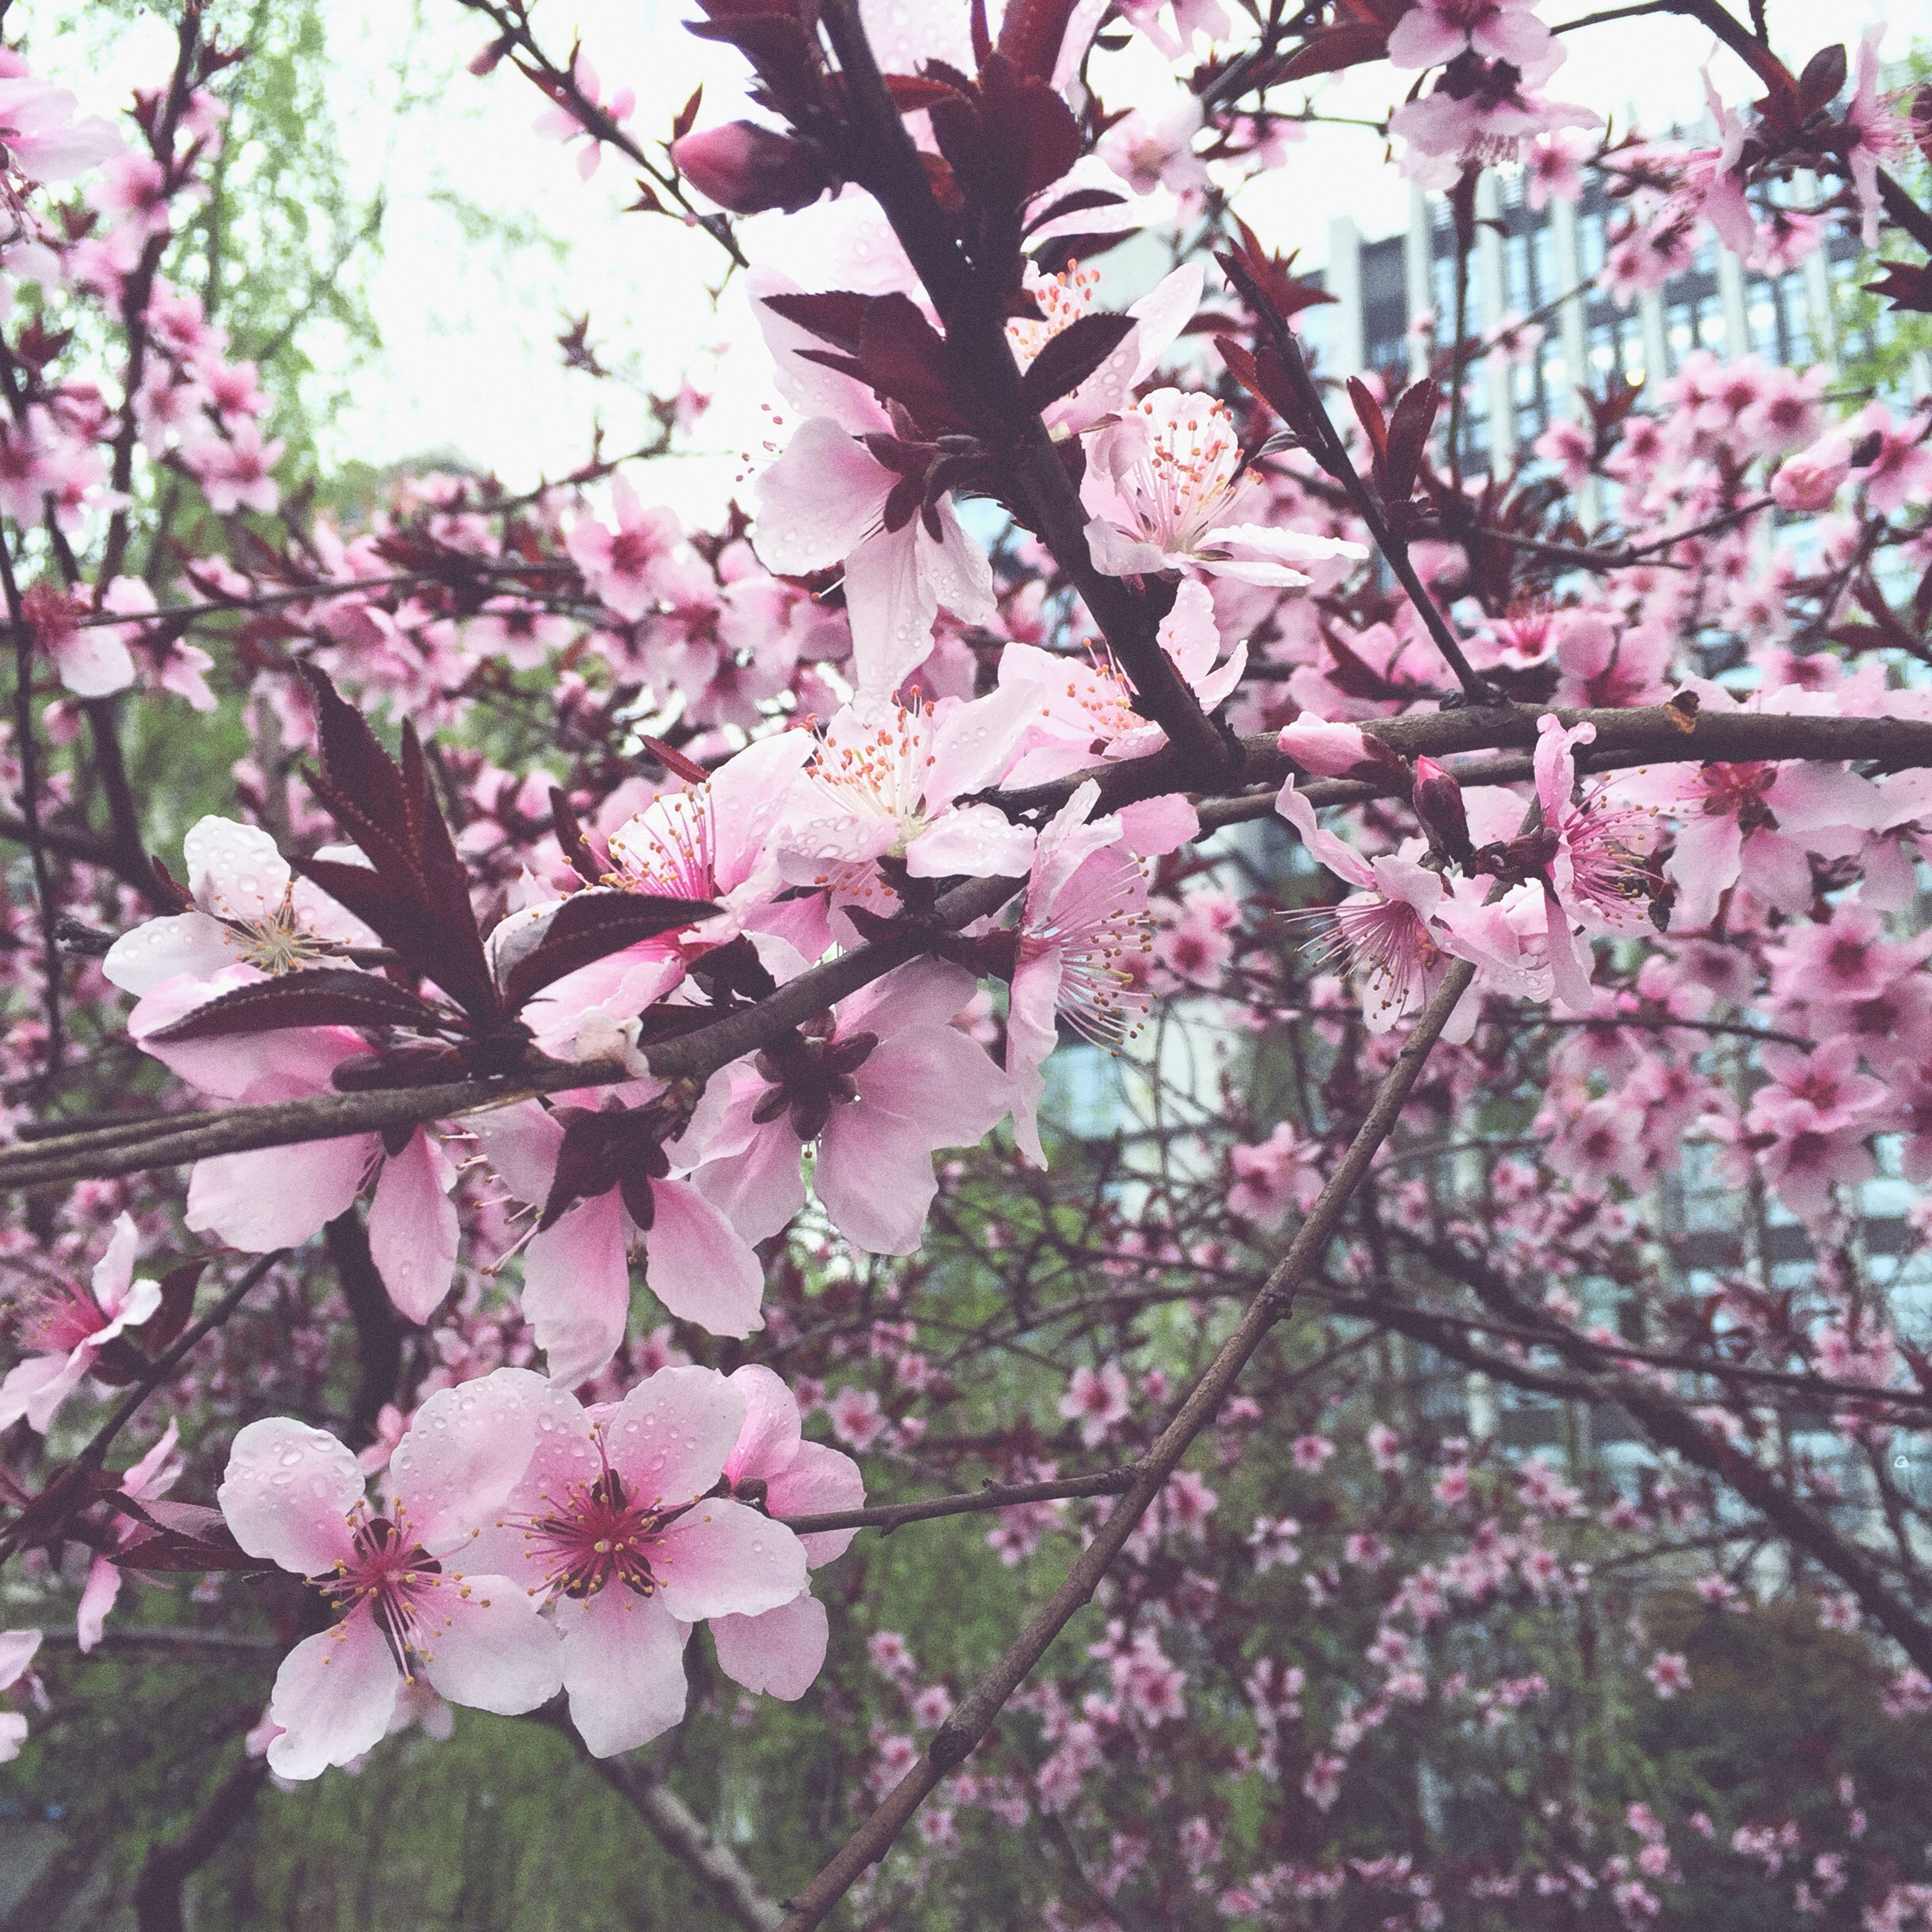 flower, freshness, growth, branch, pink color, fragility, tree, beauty in nature, nature, blossom, cherry blossom, in bloom, low angle view, blooming, petal, springtime, cherry tree, pink, day, botany